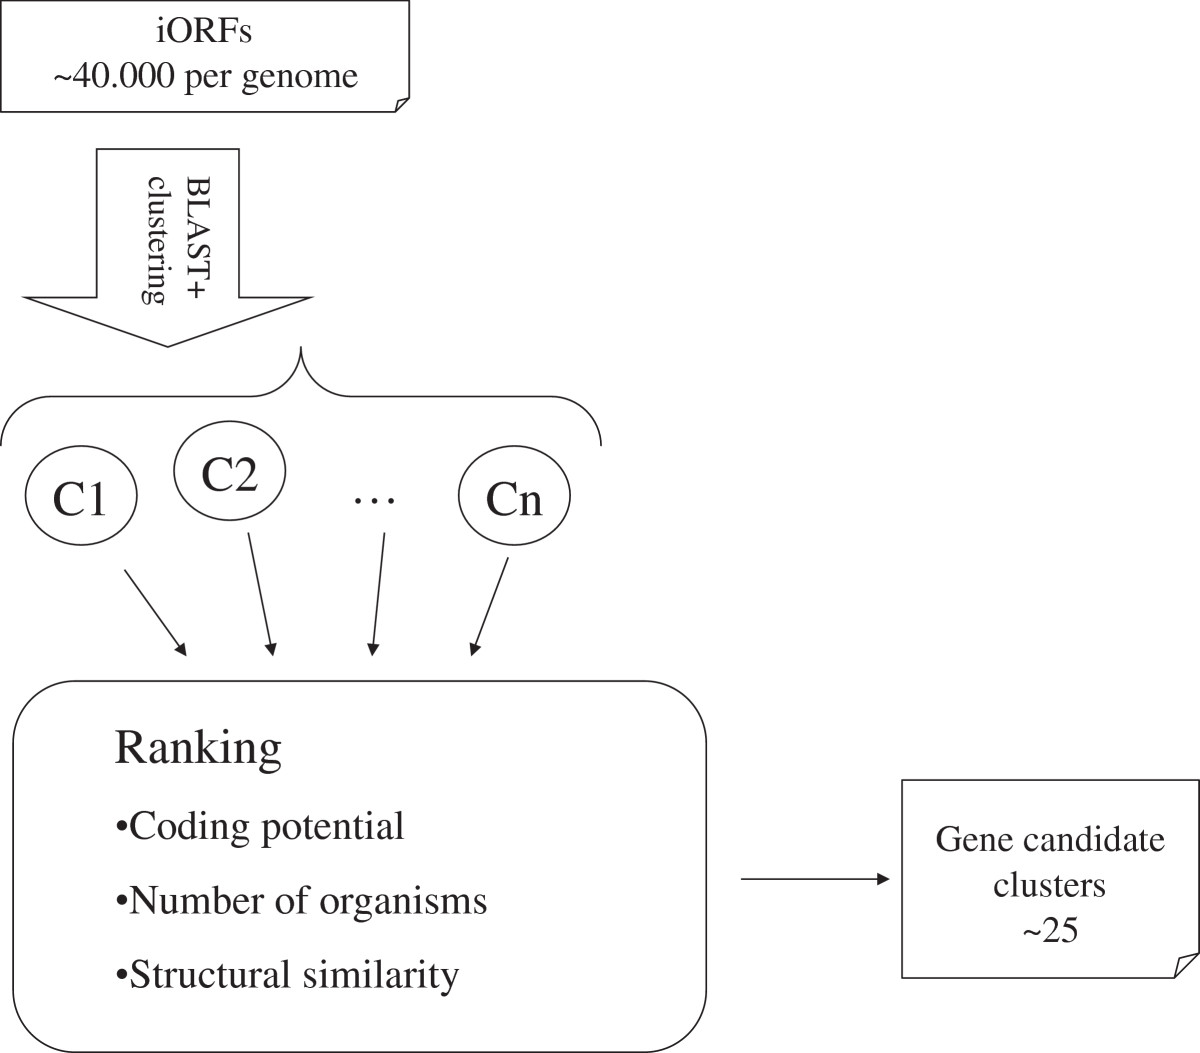 https://static-content.springer.com/image/art%3A10.1186%2F1471-2105-14-118/MediaObjects/12859_2012_Article_5838_Fig1_HTML.jpg